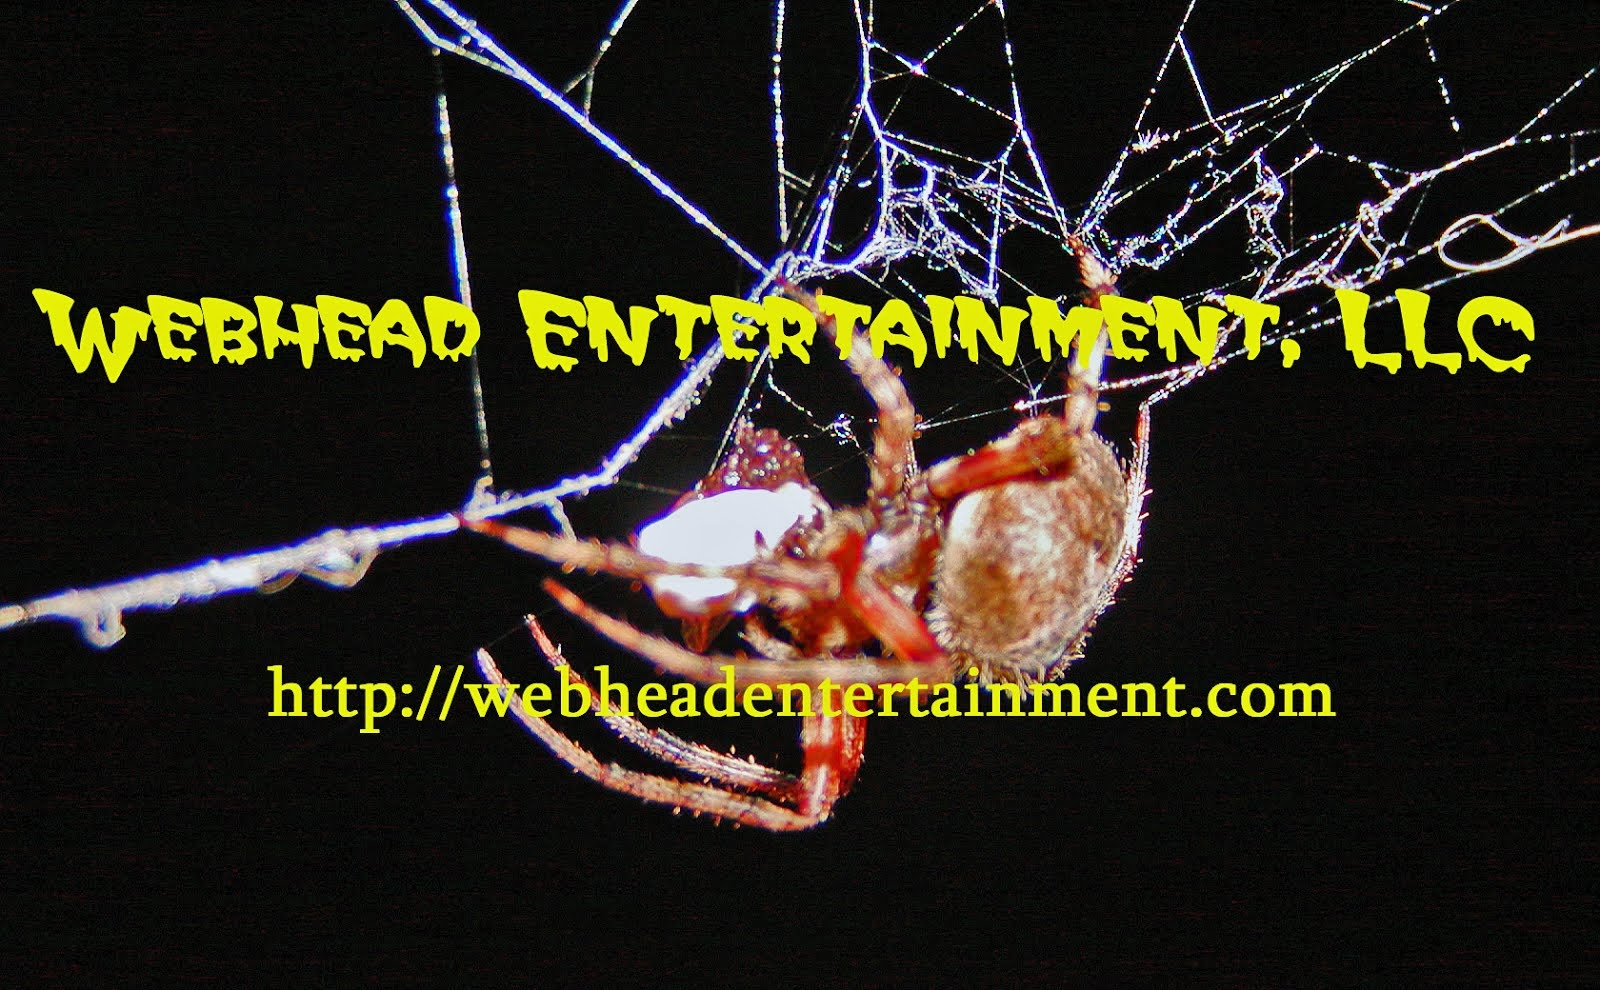 Webhead Entertainment LLC